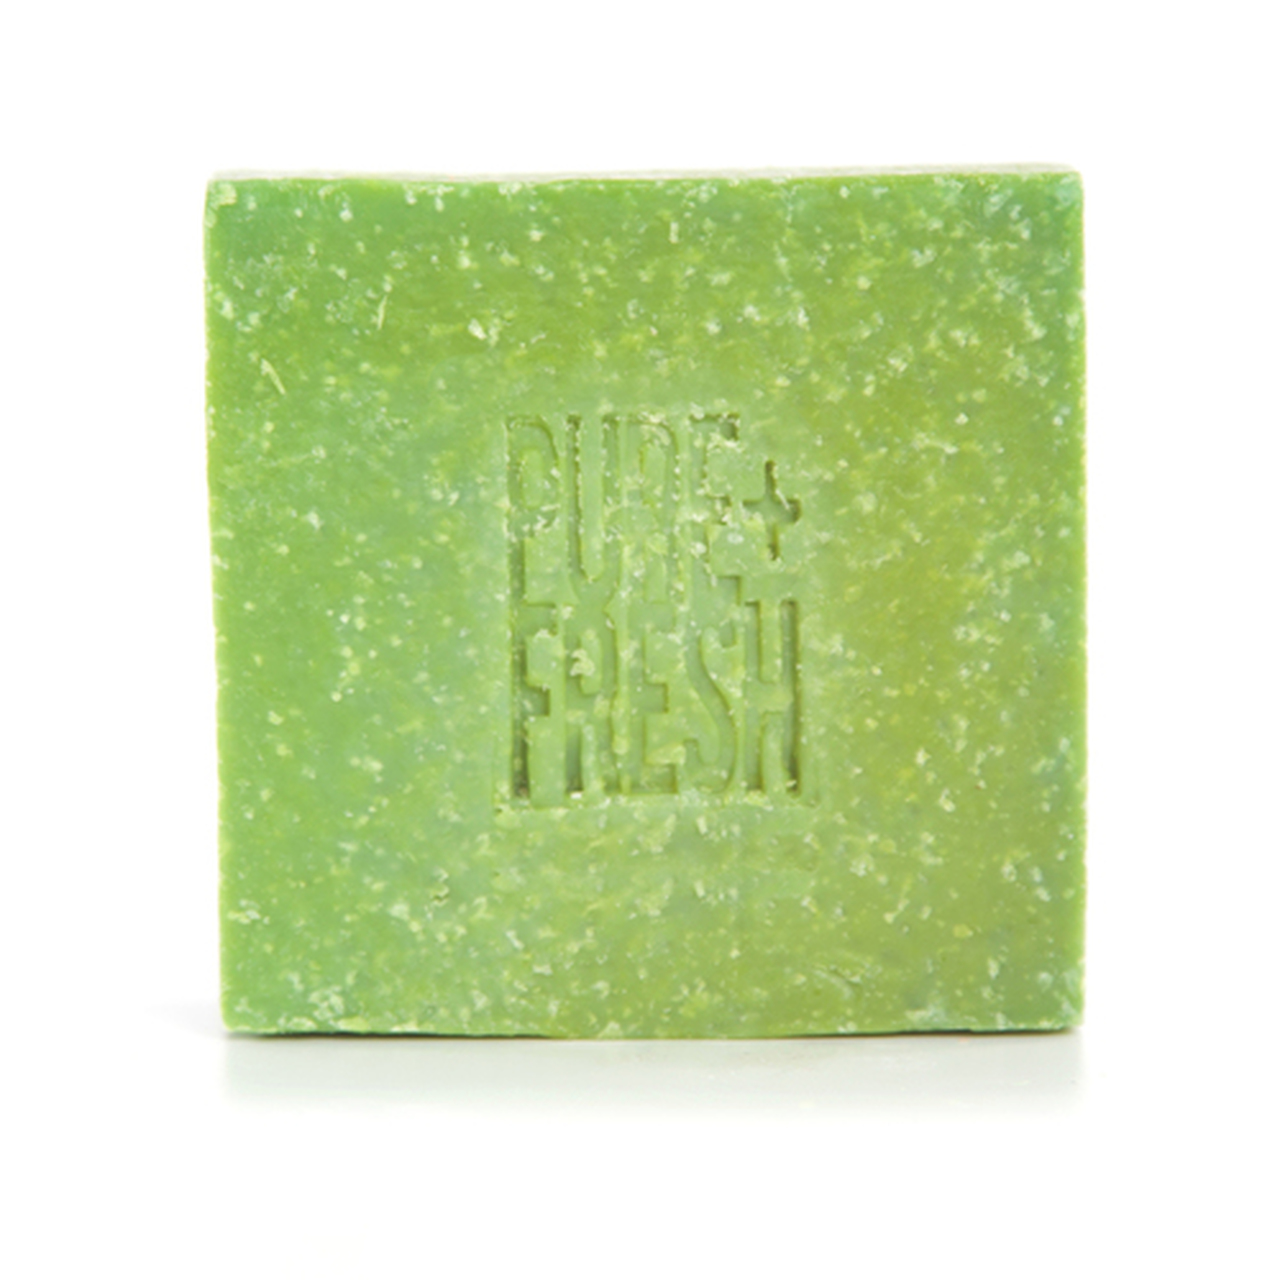 5oz Green Tea Body Soap